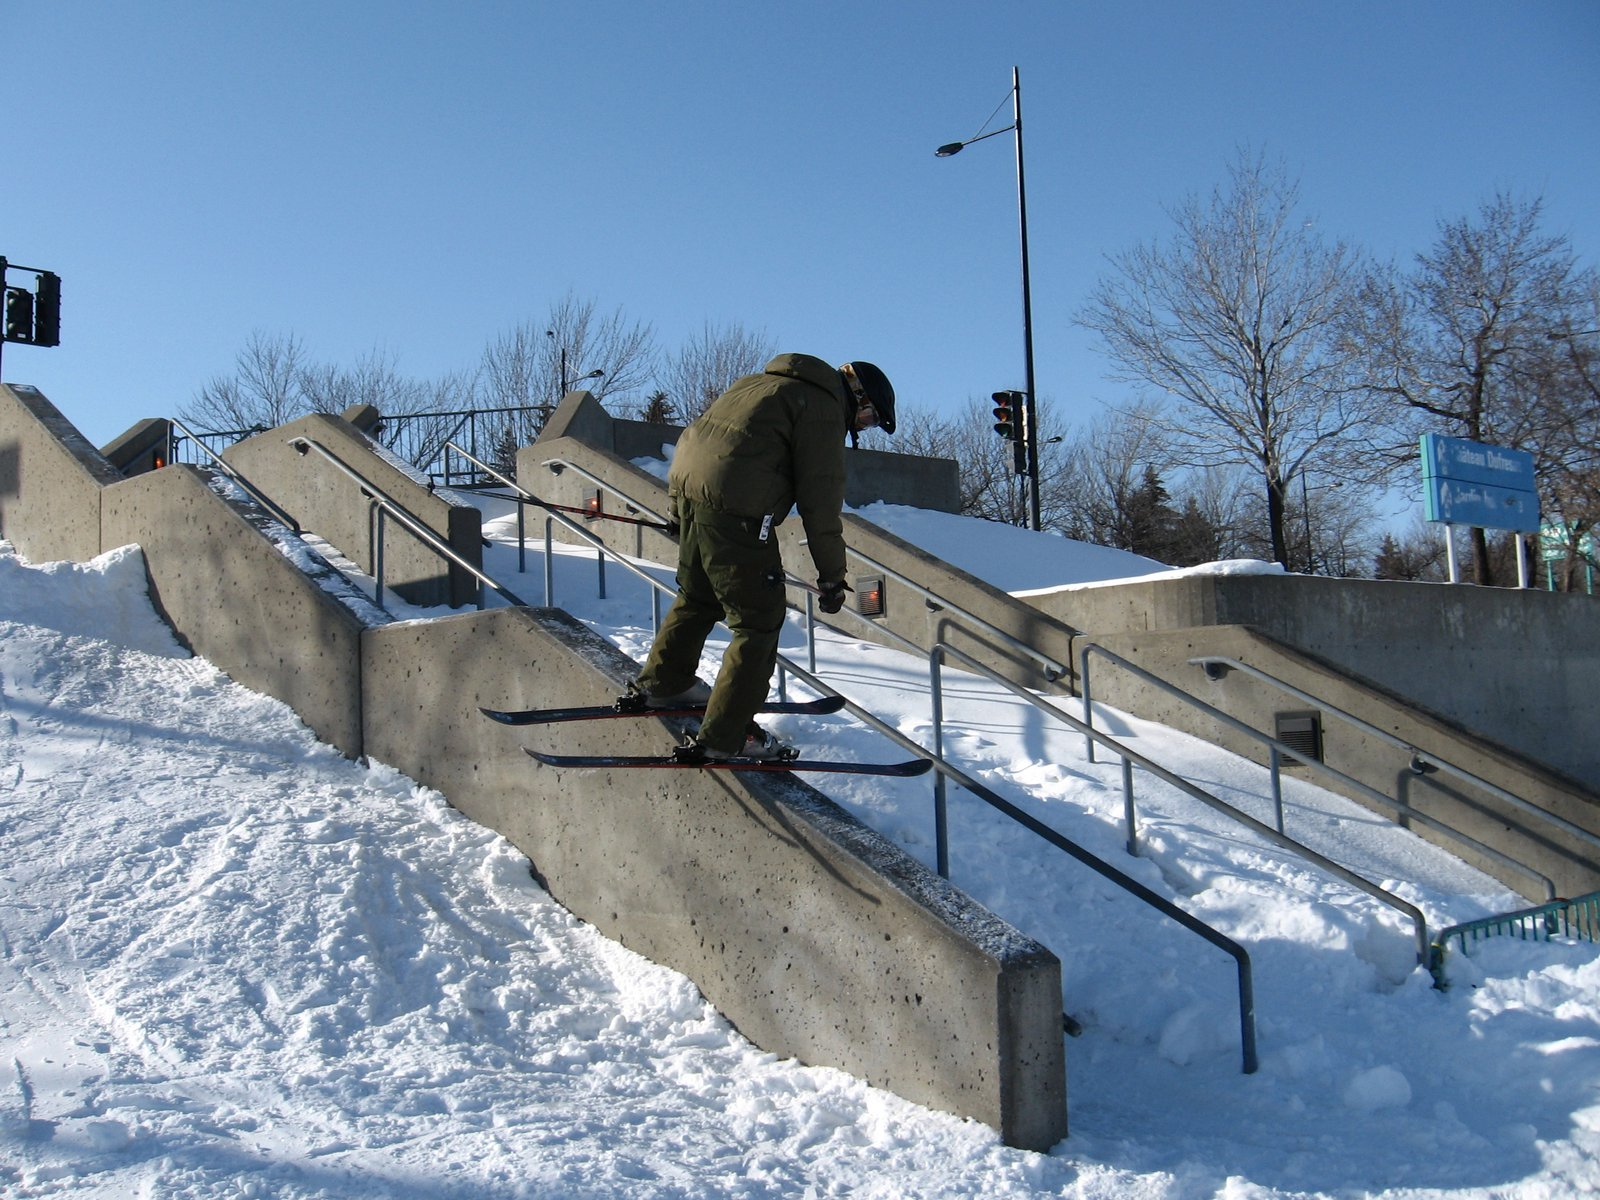 Jibbing at the Olympic Stadium in Montreal - 1 of 4